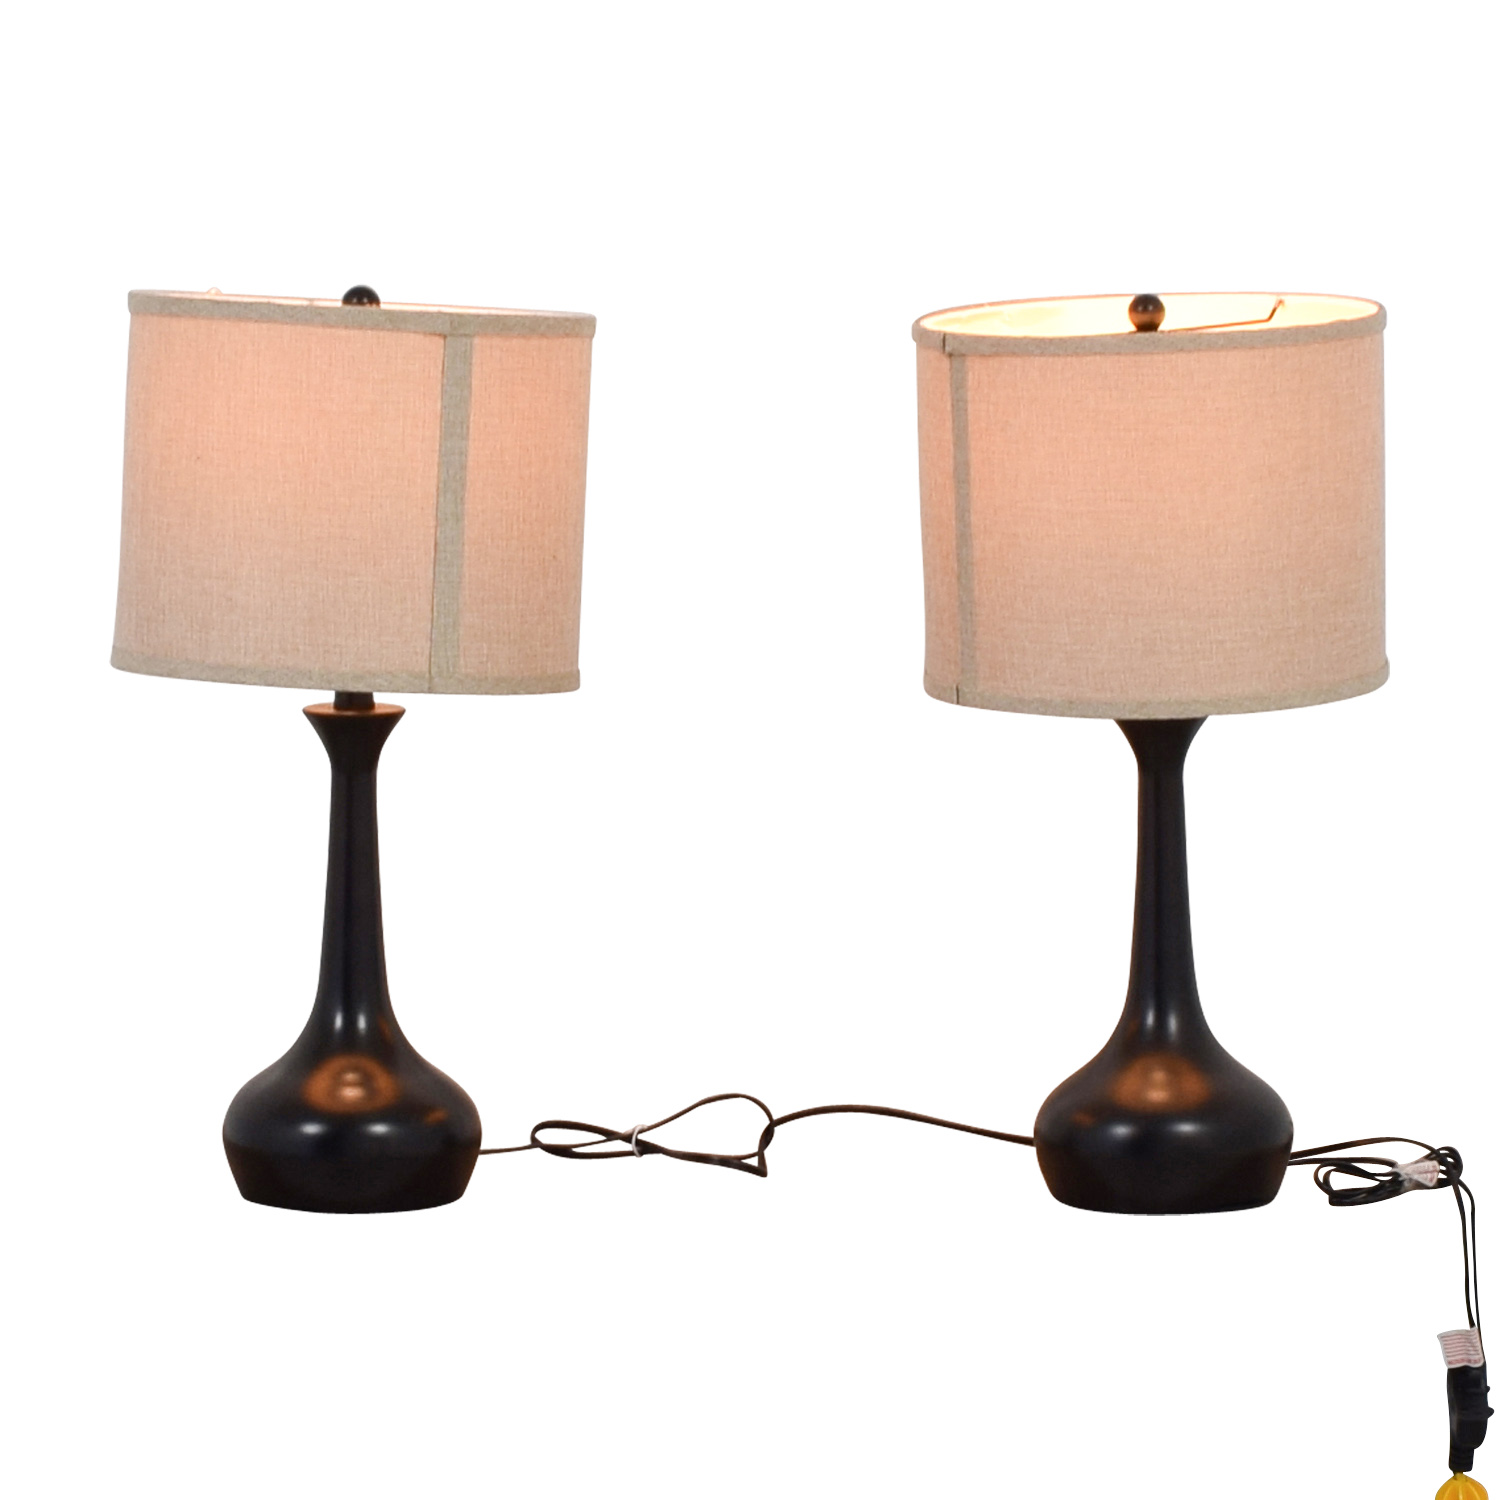 Pier 1 Imports Pier 1 Imports Black Table Lamps second hand